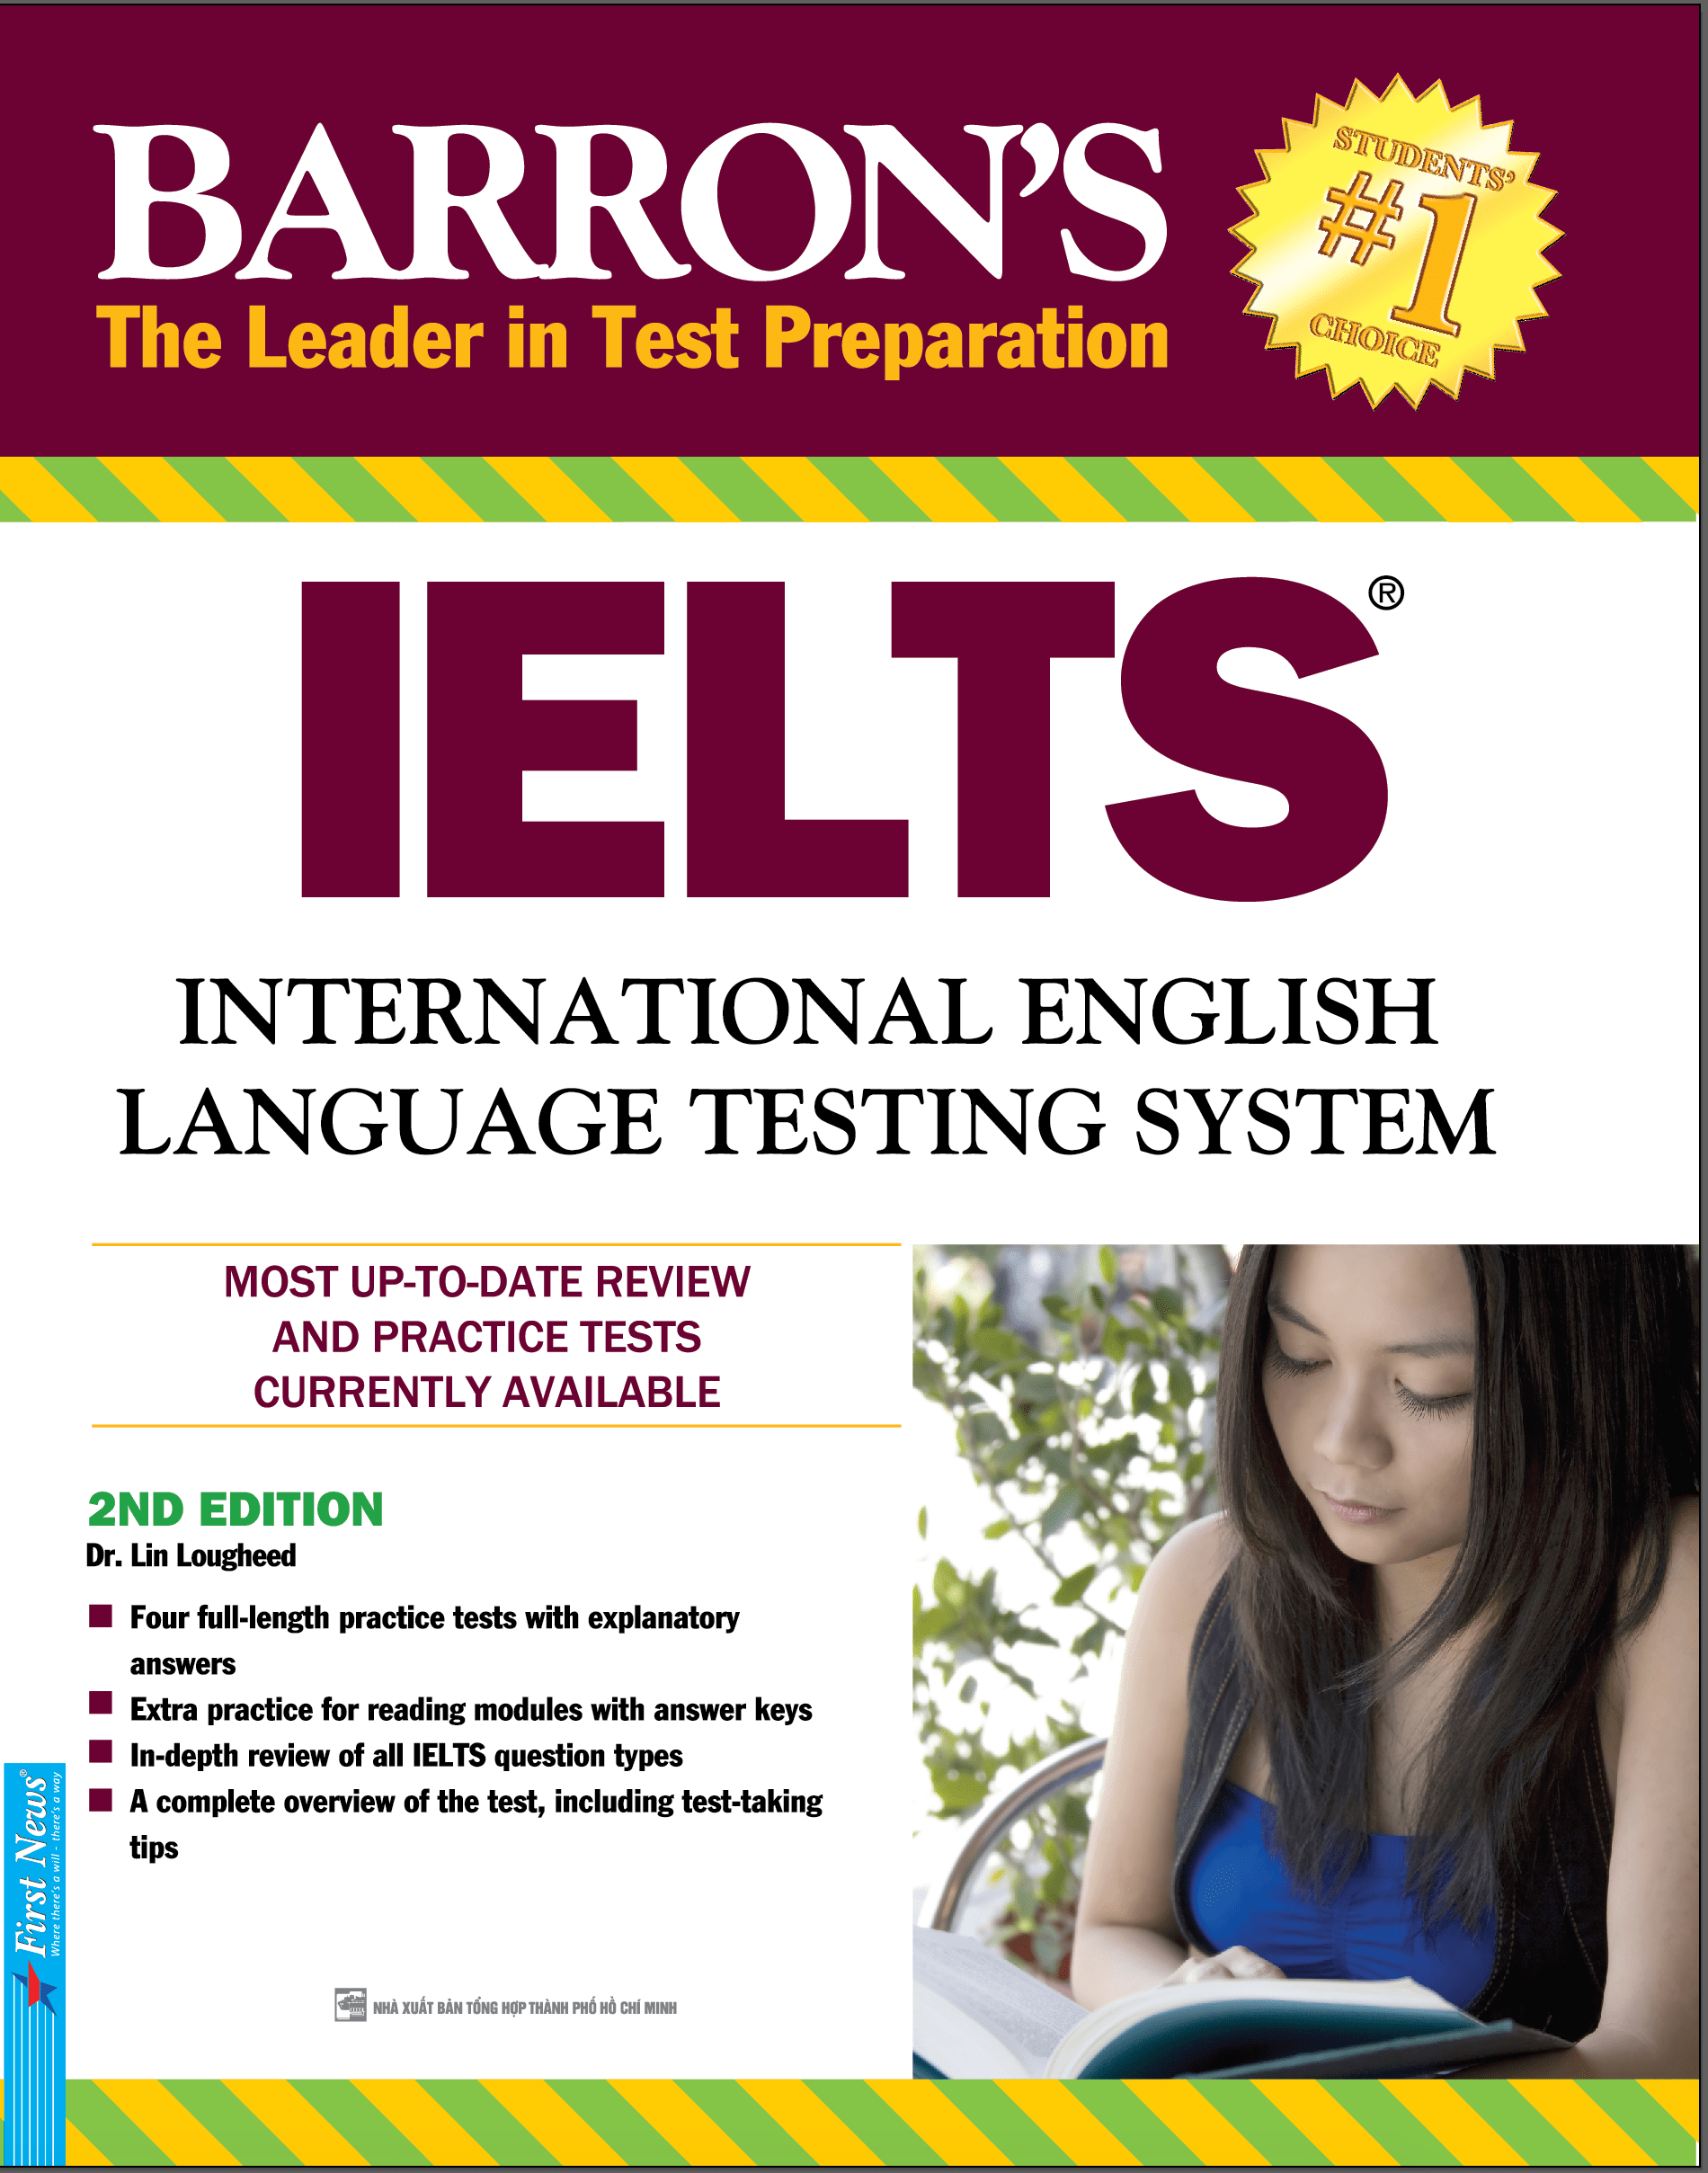 BARRON'S IELTS - THE LEADER IN TEST PREPARATION